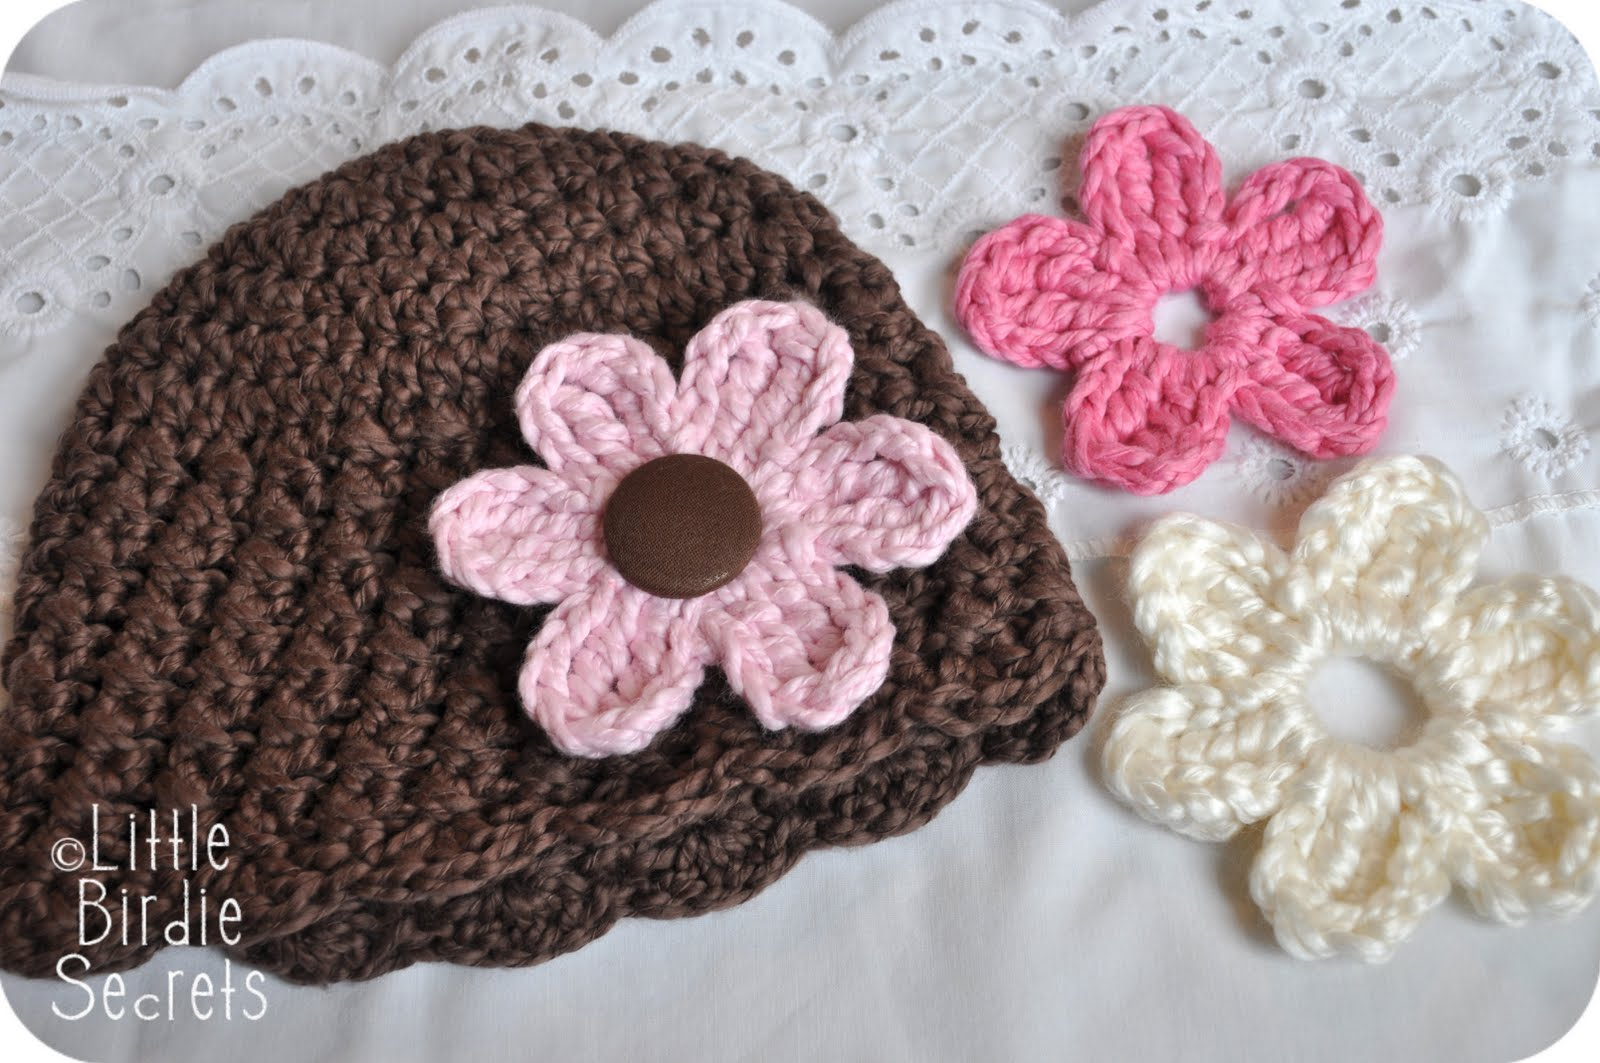 New baby hat and bootie patterns in the shop plus a free flower new baby hat and bootie patterns in the shop plus a free flower pattern little birdie secrets bankloansurffo Images